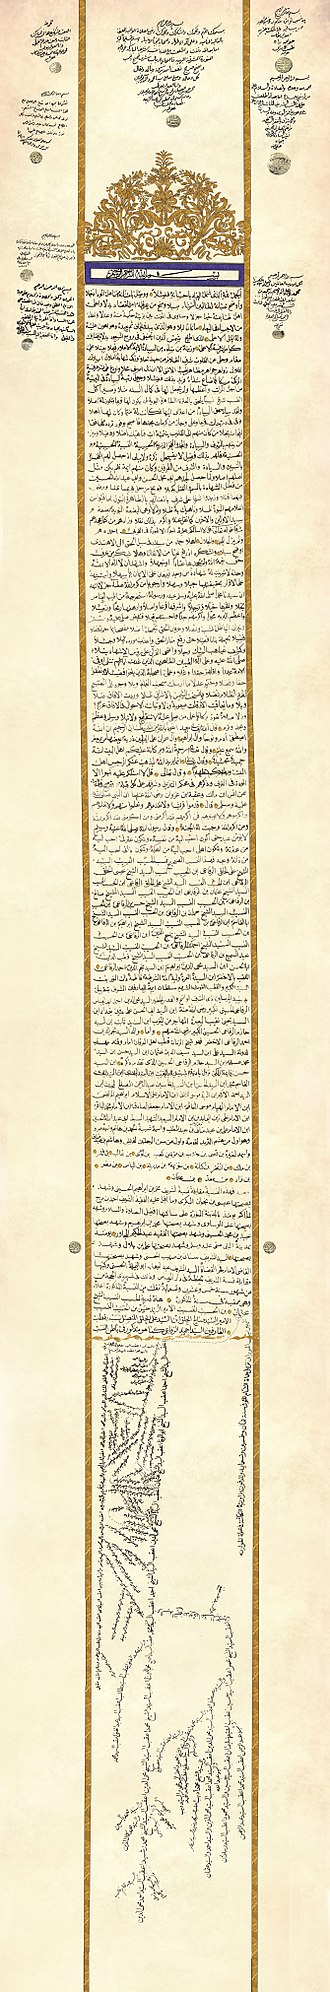 Akram al-Hawrani - A reconstructed digital copy of Al-Hourani family tree, the original document is dated back to 1519 and displayed in Hama museum.